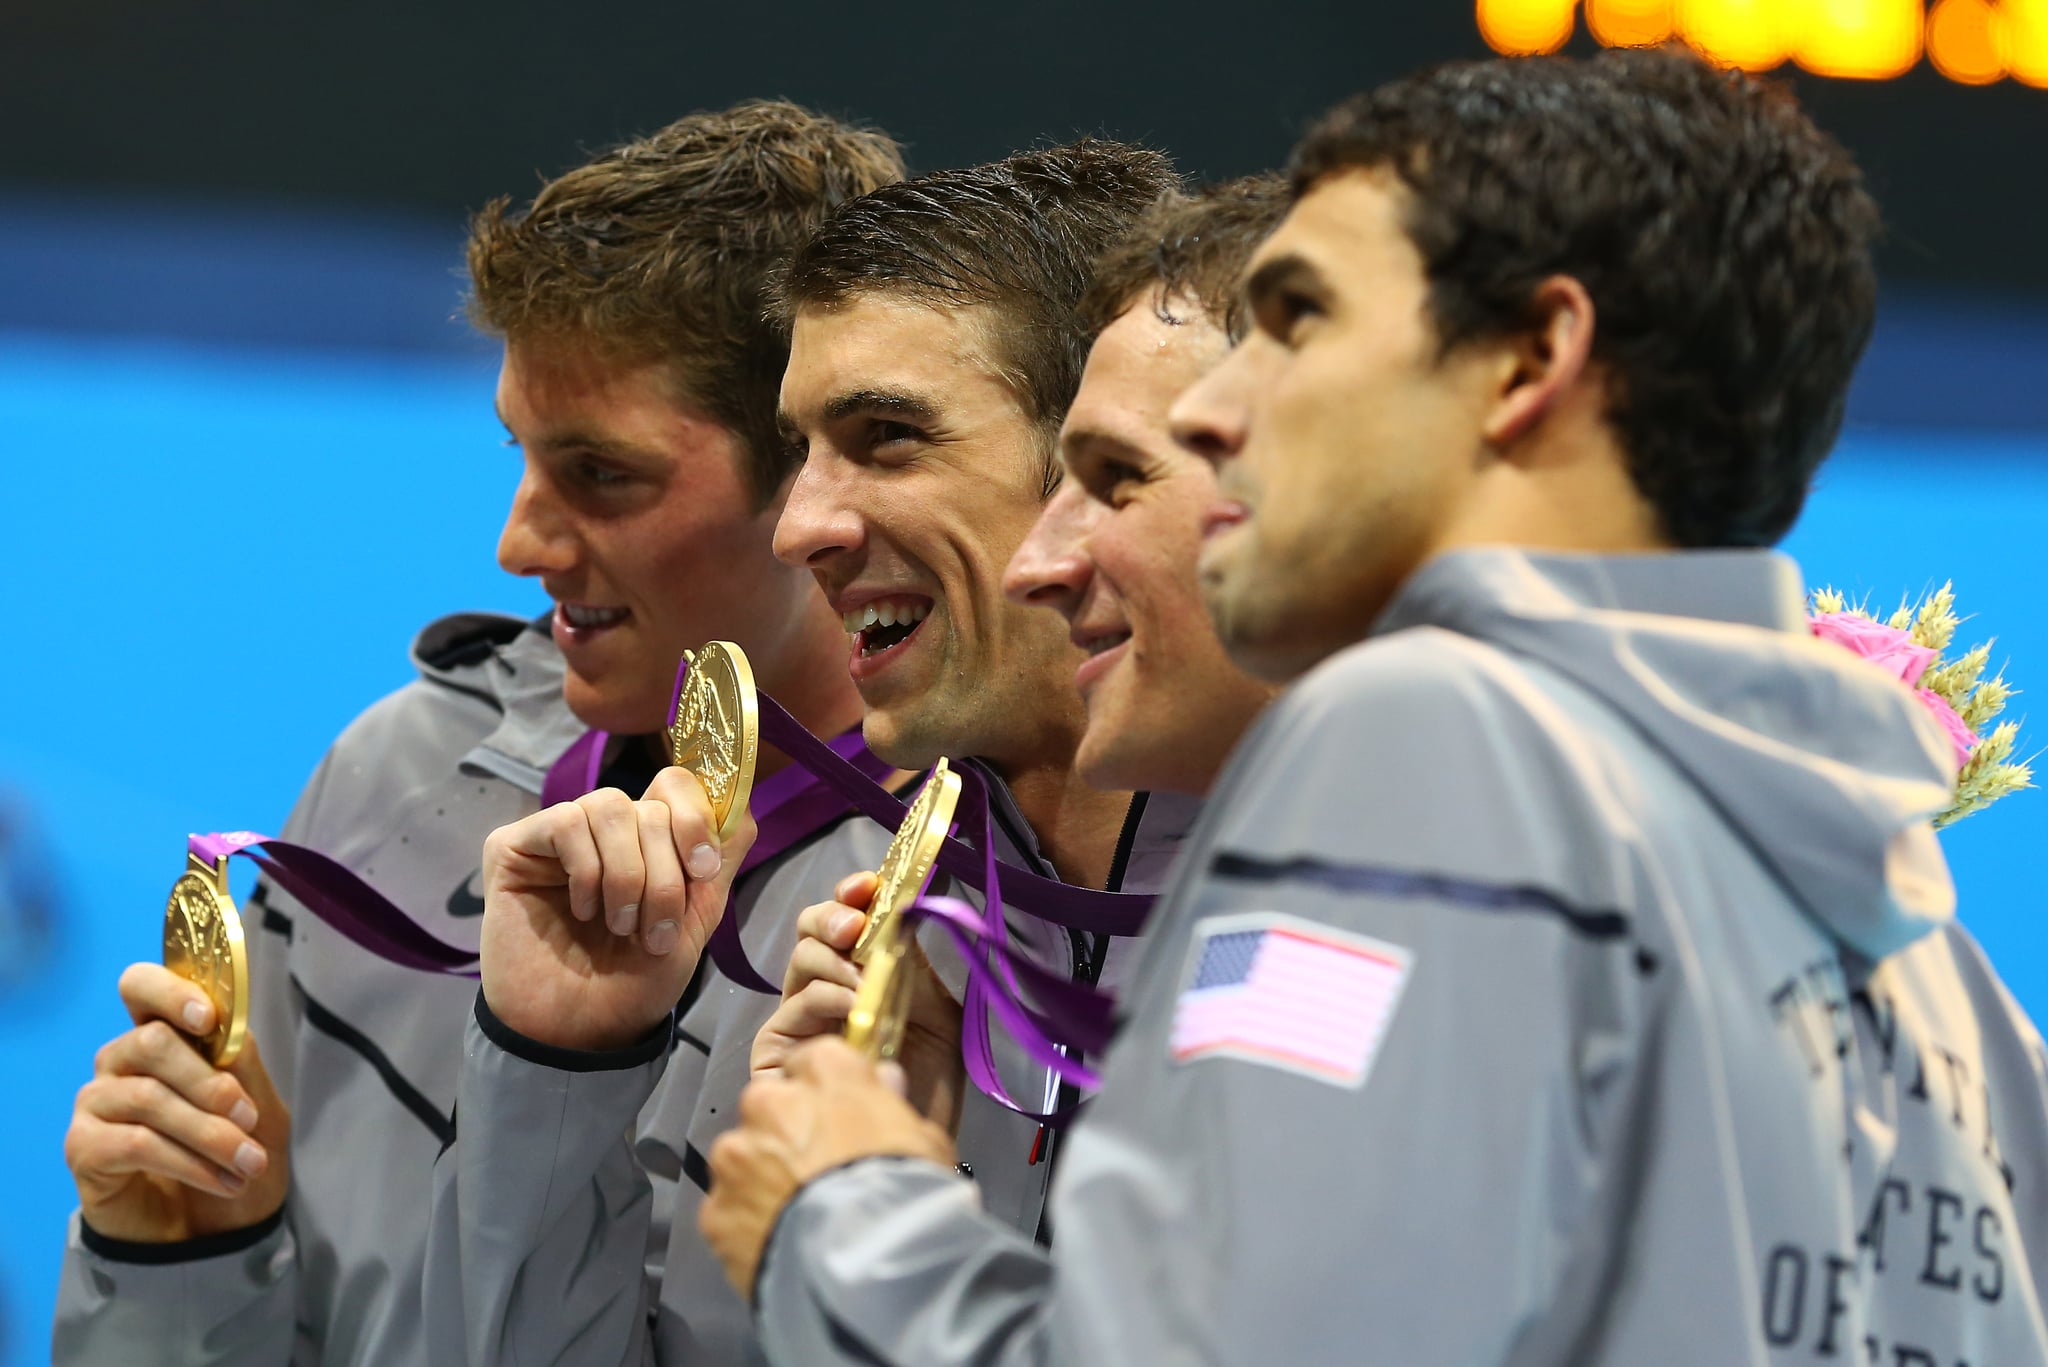 Michael Phelps snapped a photo with the USA relay team.